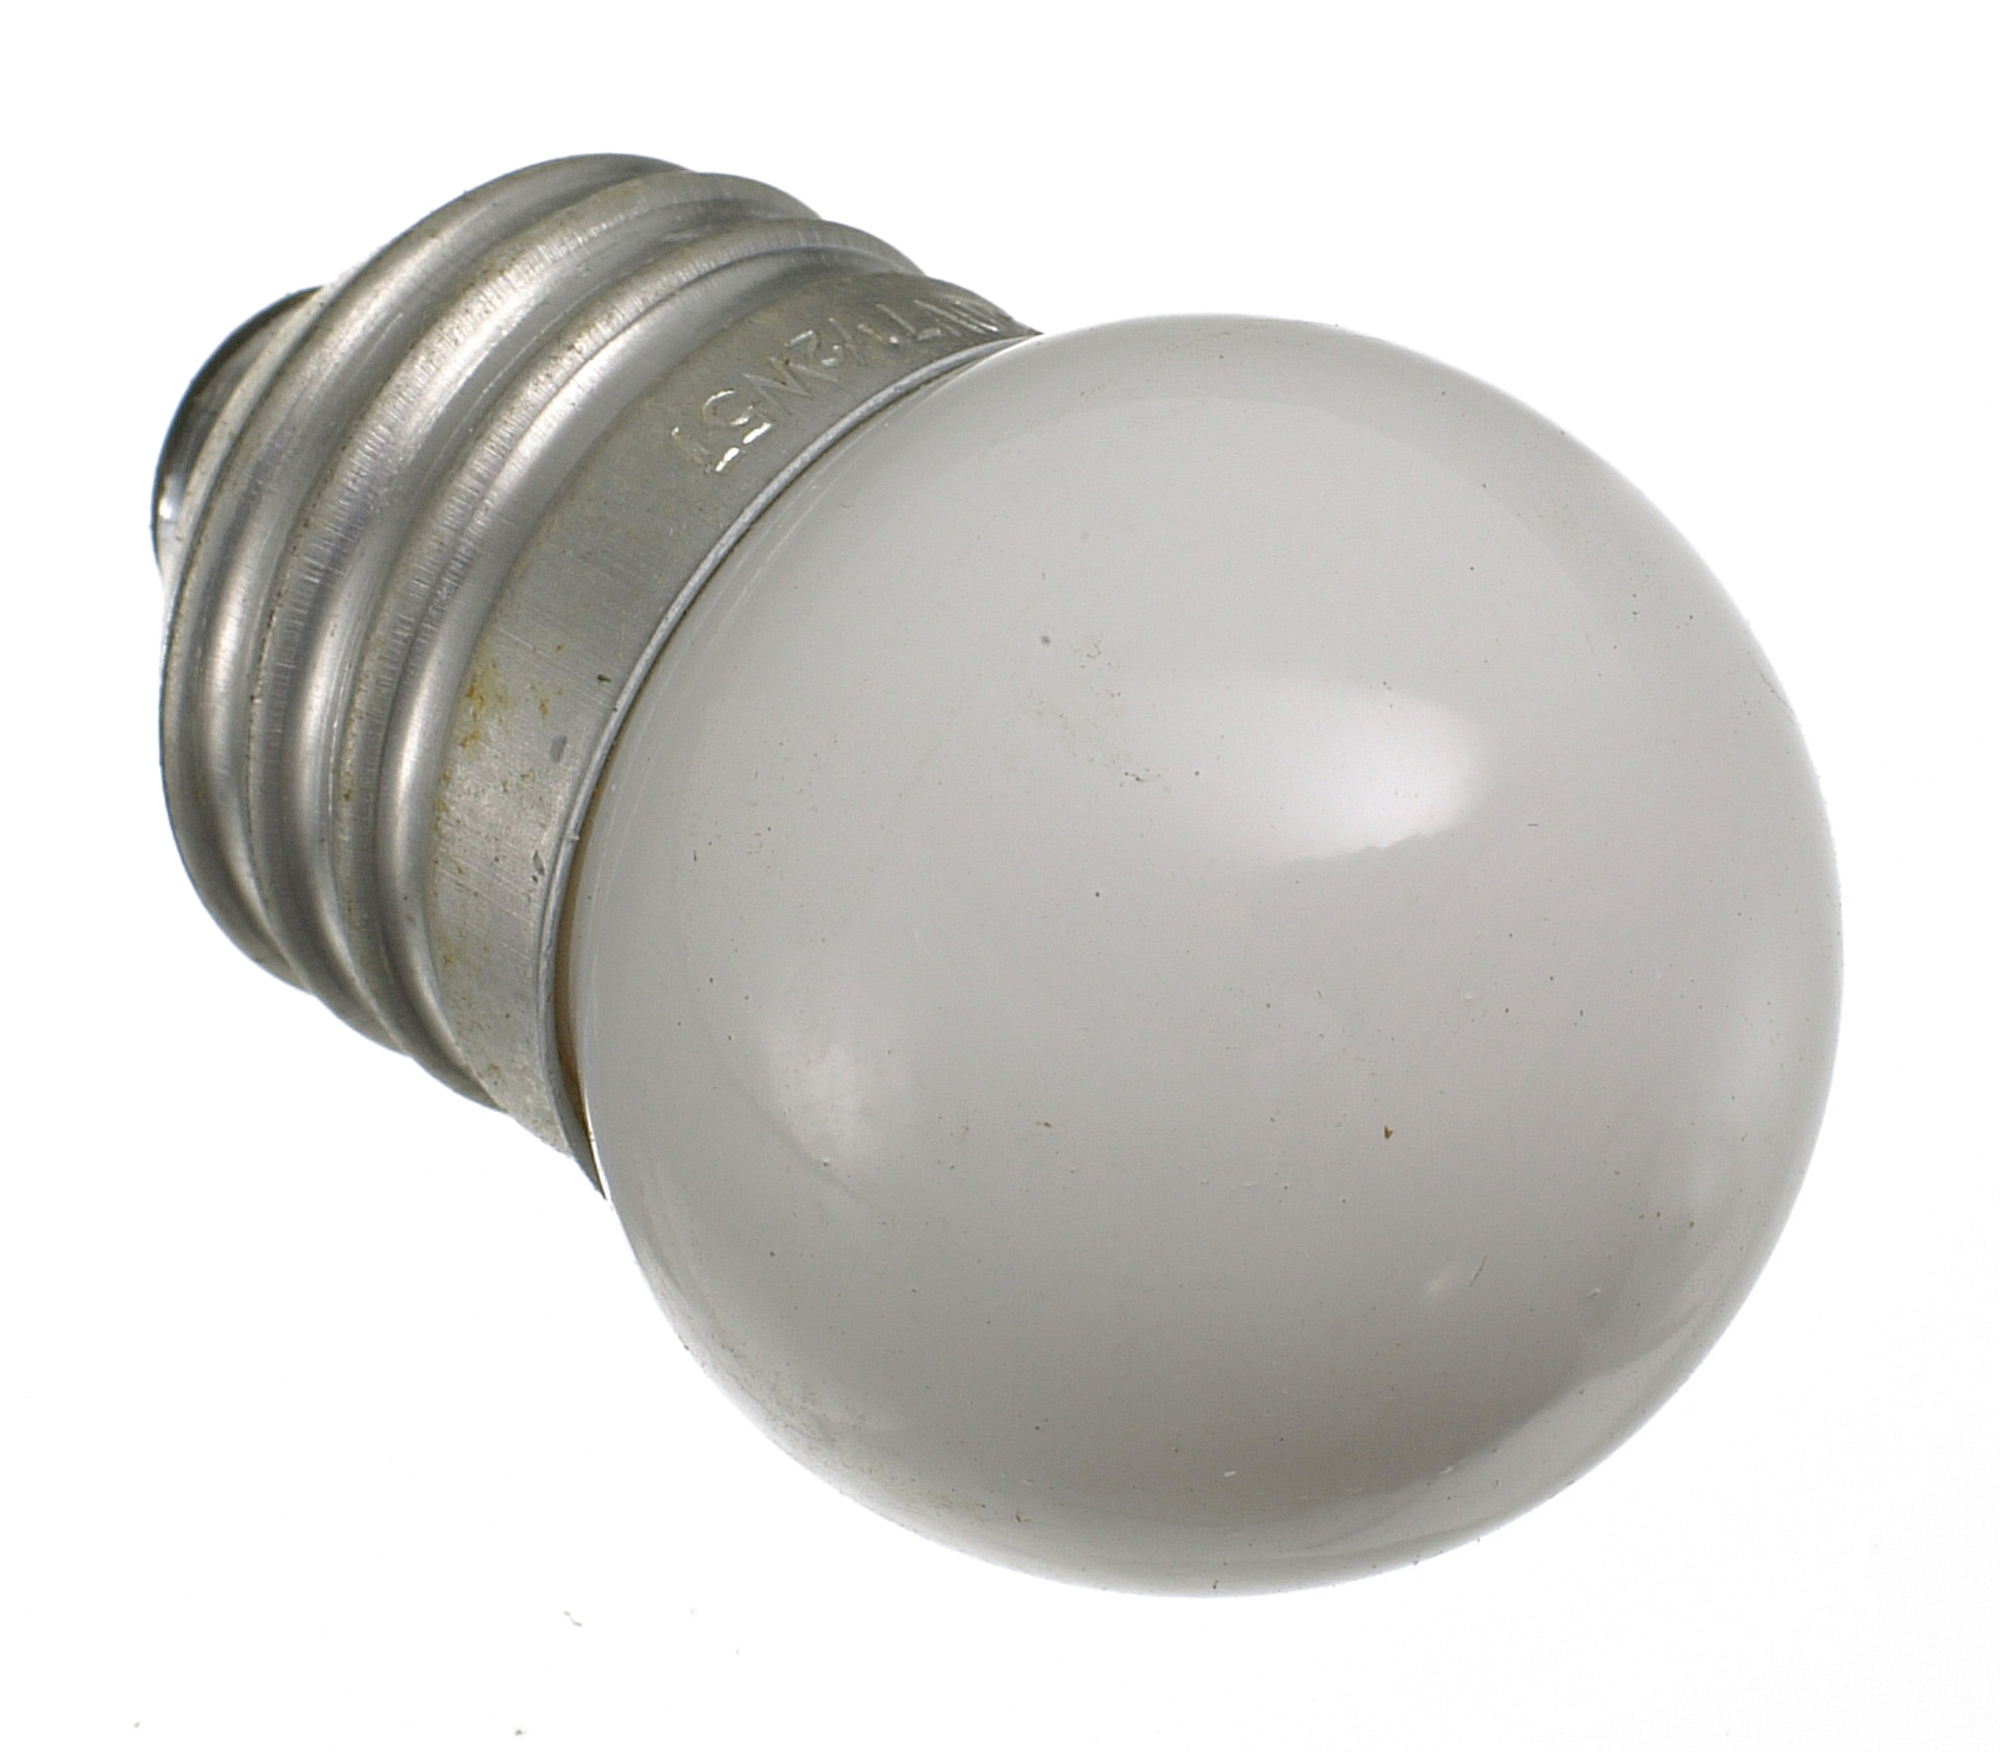 Image for Light Bulb - Incandescent 7.5W, 238880 from Howard Miller Parts Store